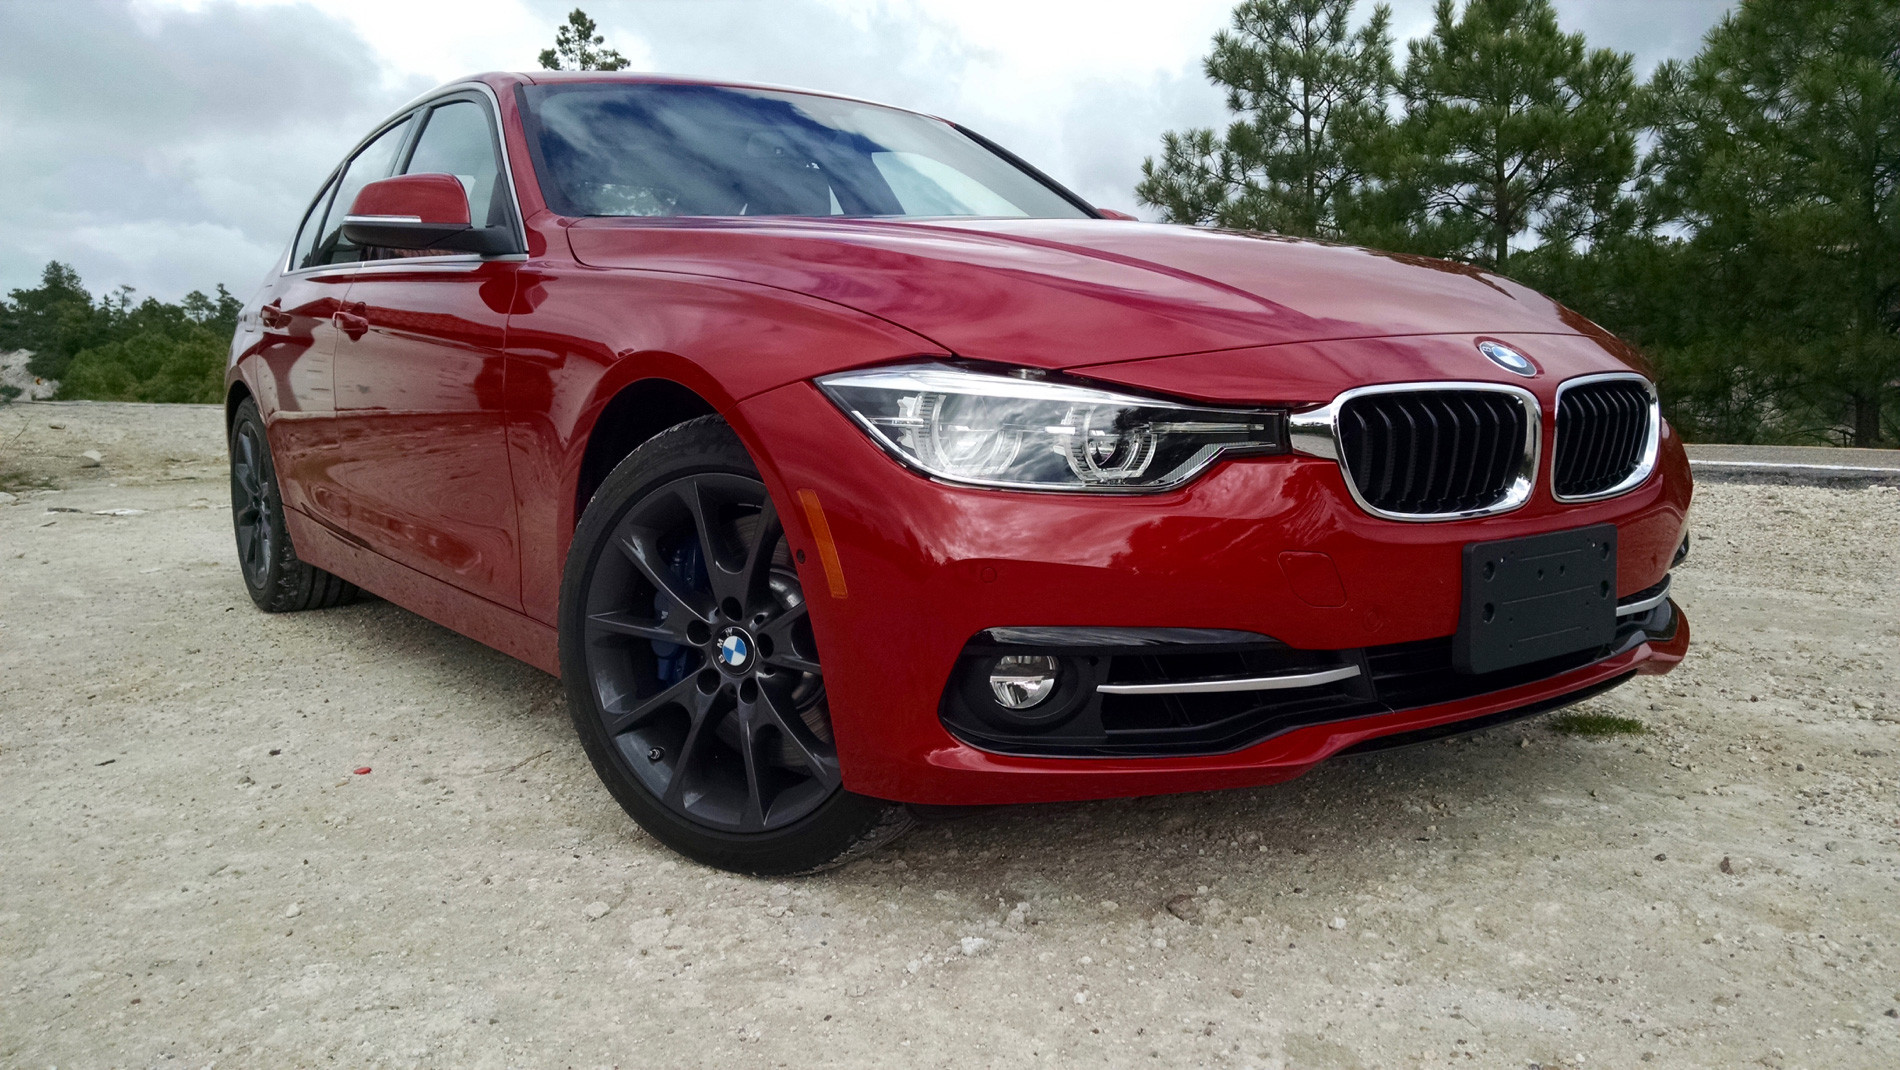 I Xdrive 0 60 >> FIRST DRIVE: 2016 BMW 340i